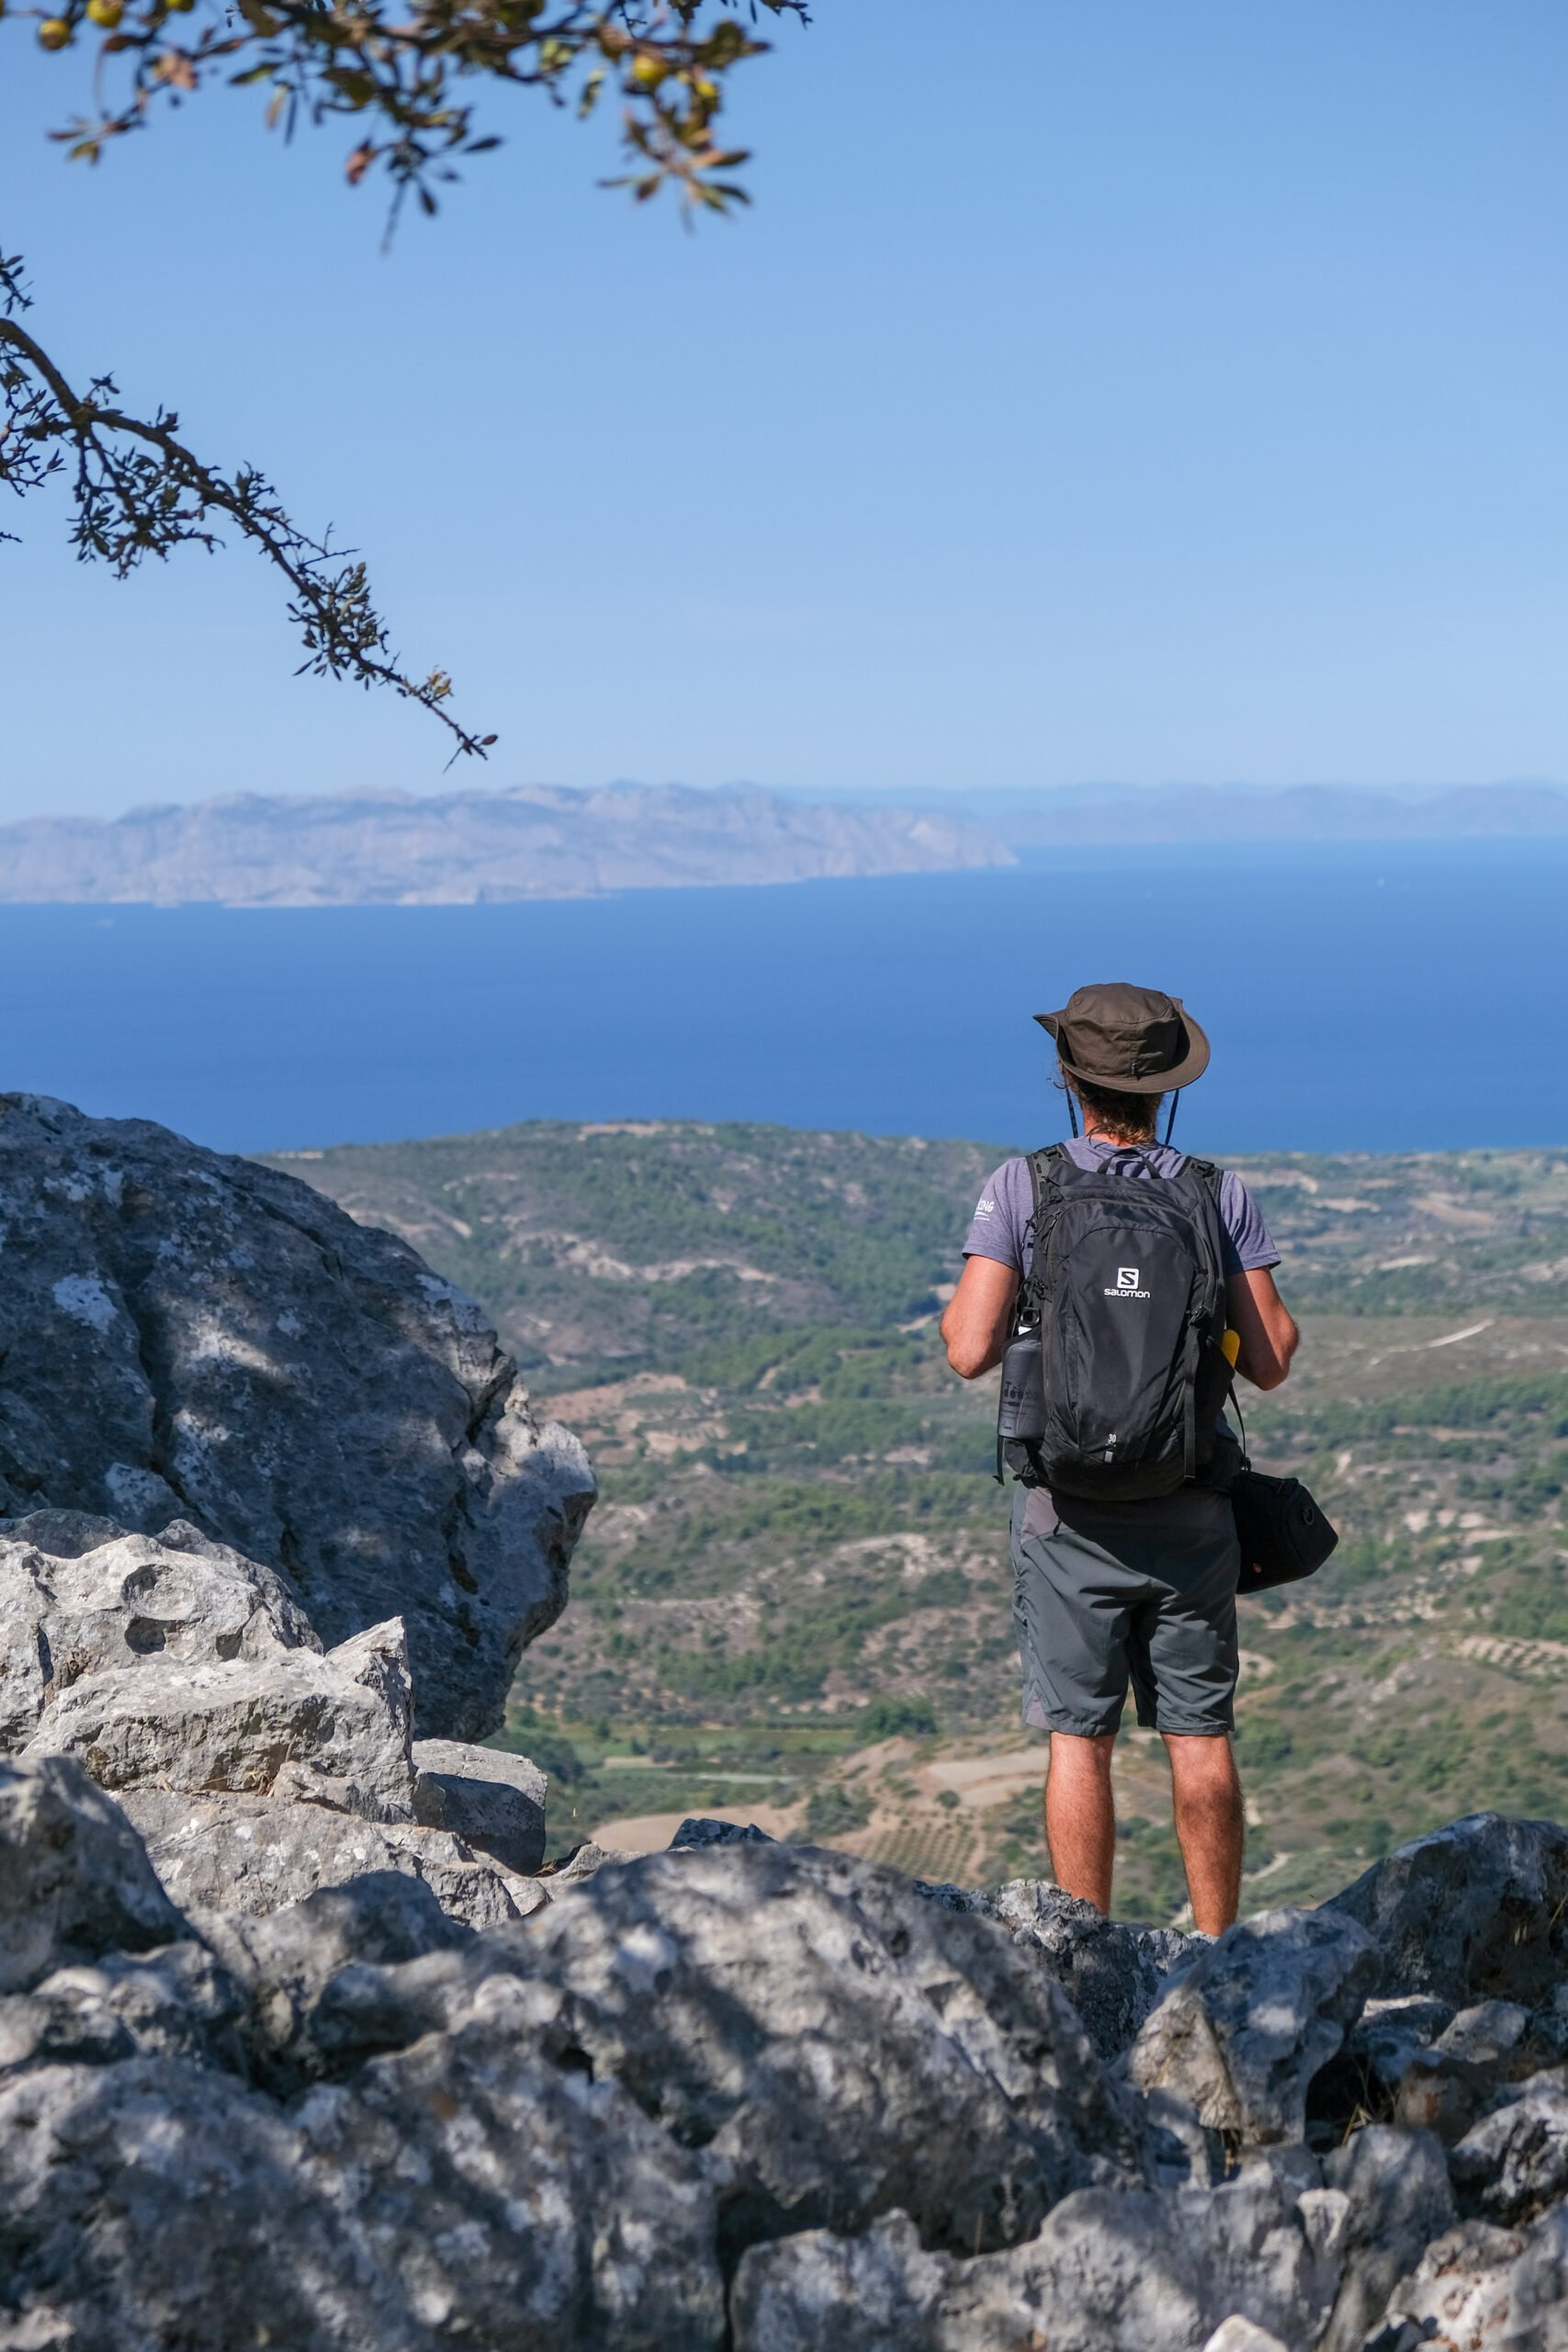 Relaxe Under The Shade Of Ilex, Pine And Olive Trees In Our Profitis Ilias Sunset Hiking Tour